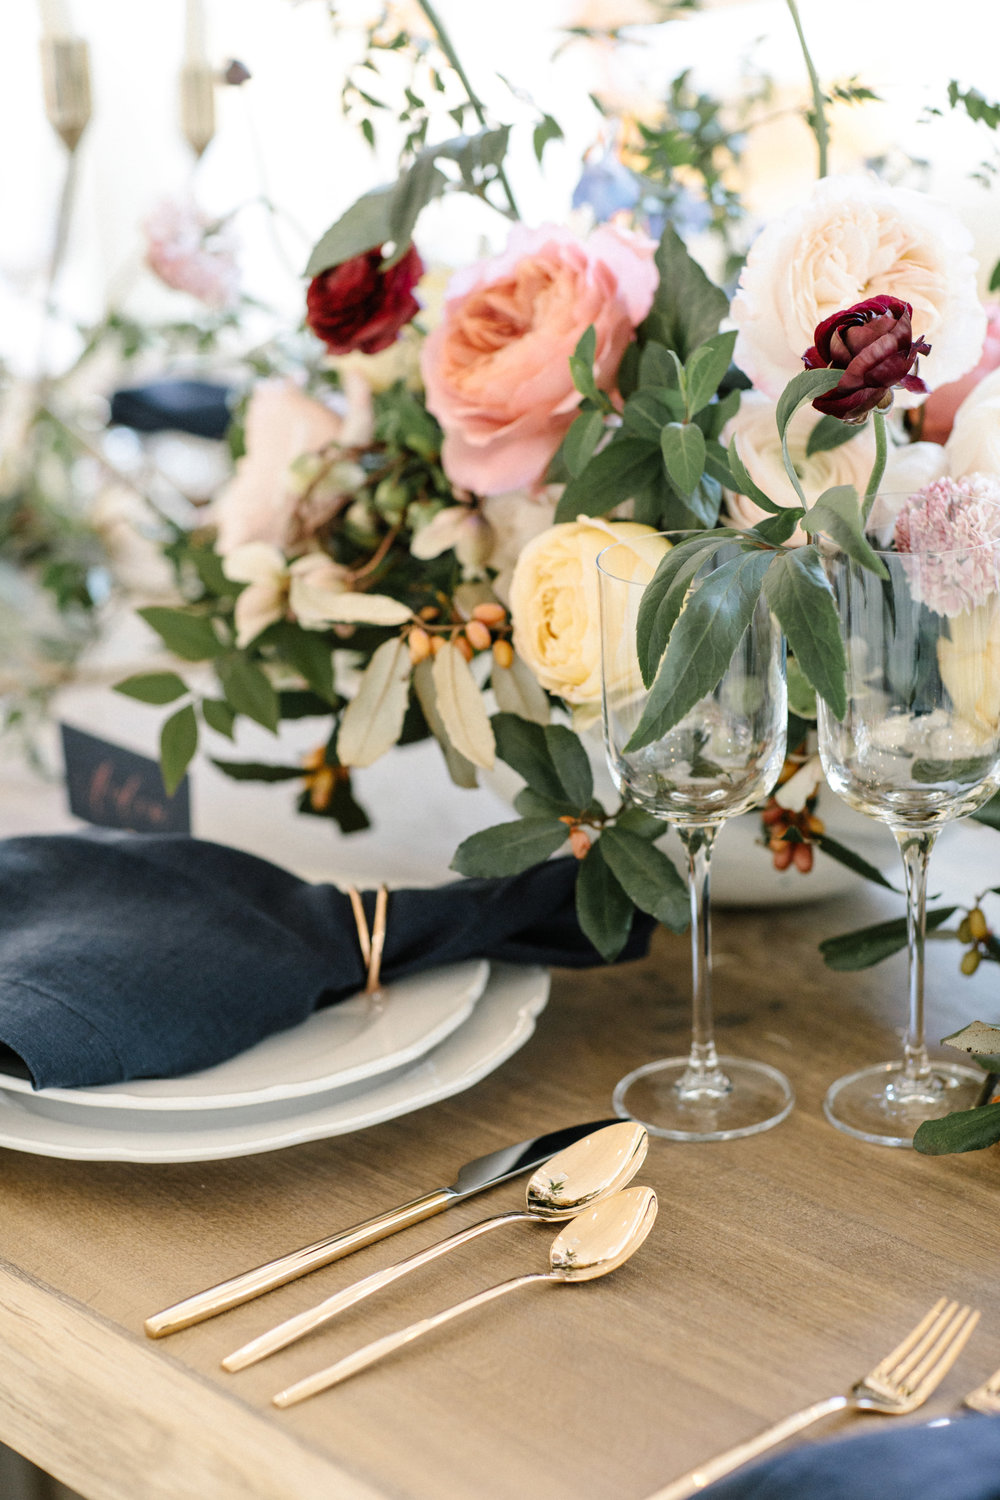 crate and barrel private registry event, how to register for your wedding, creating a wedding registry, wedding registry, crate and barrel, crate wedding